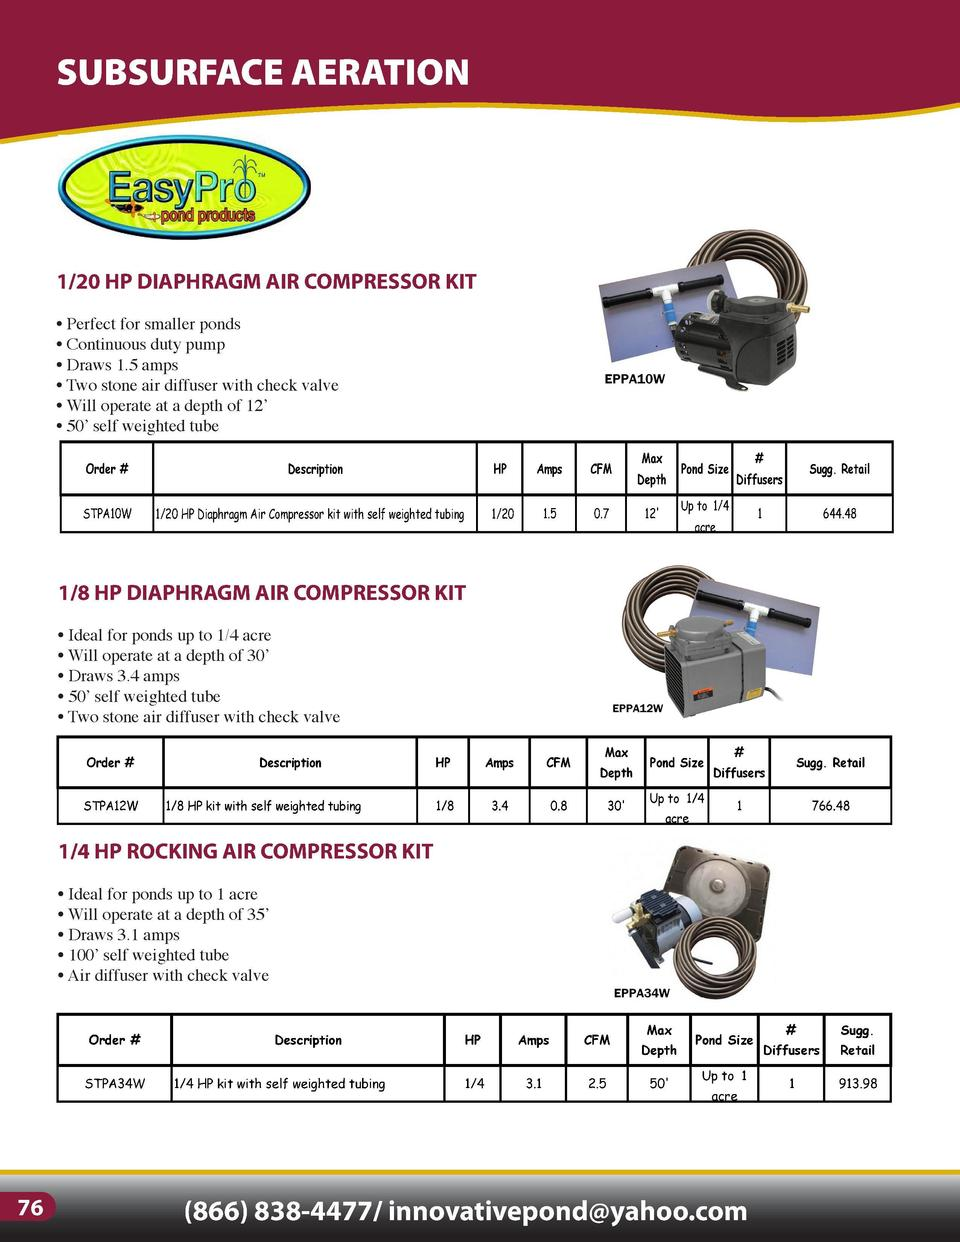 SUBSURFACE AERATION  1 4 HP HIGH VOLUME ROTARY VANE COMPRESSOR KIT     For ponds 1 acre and larger, or two smaller ponds  ...